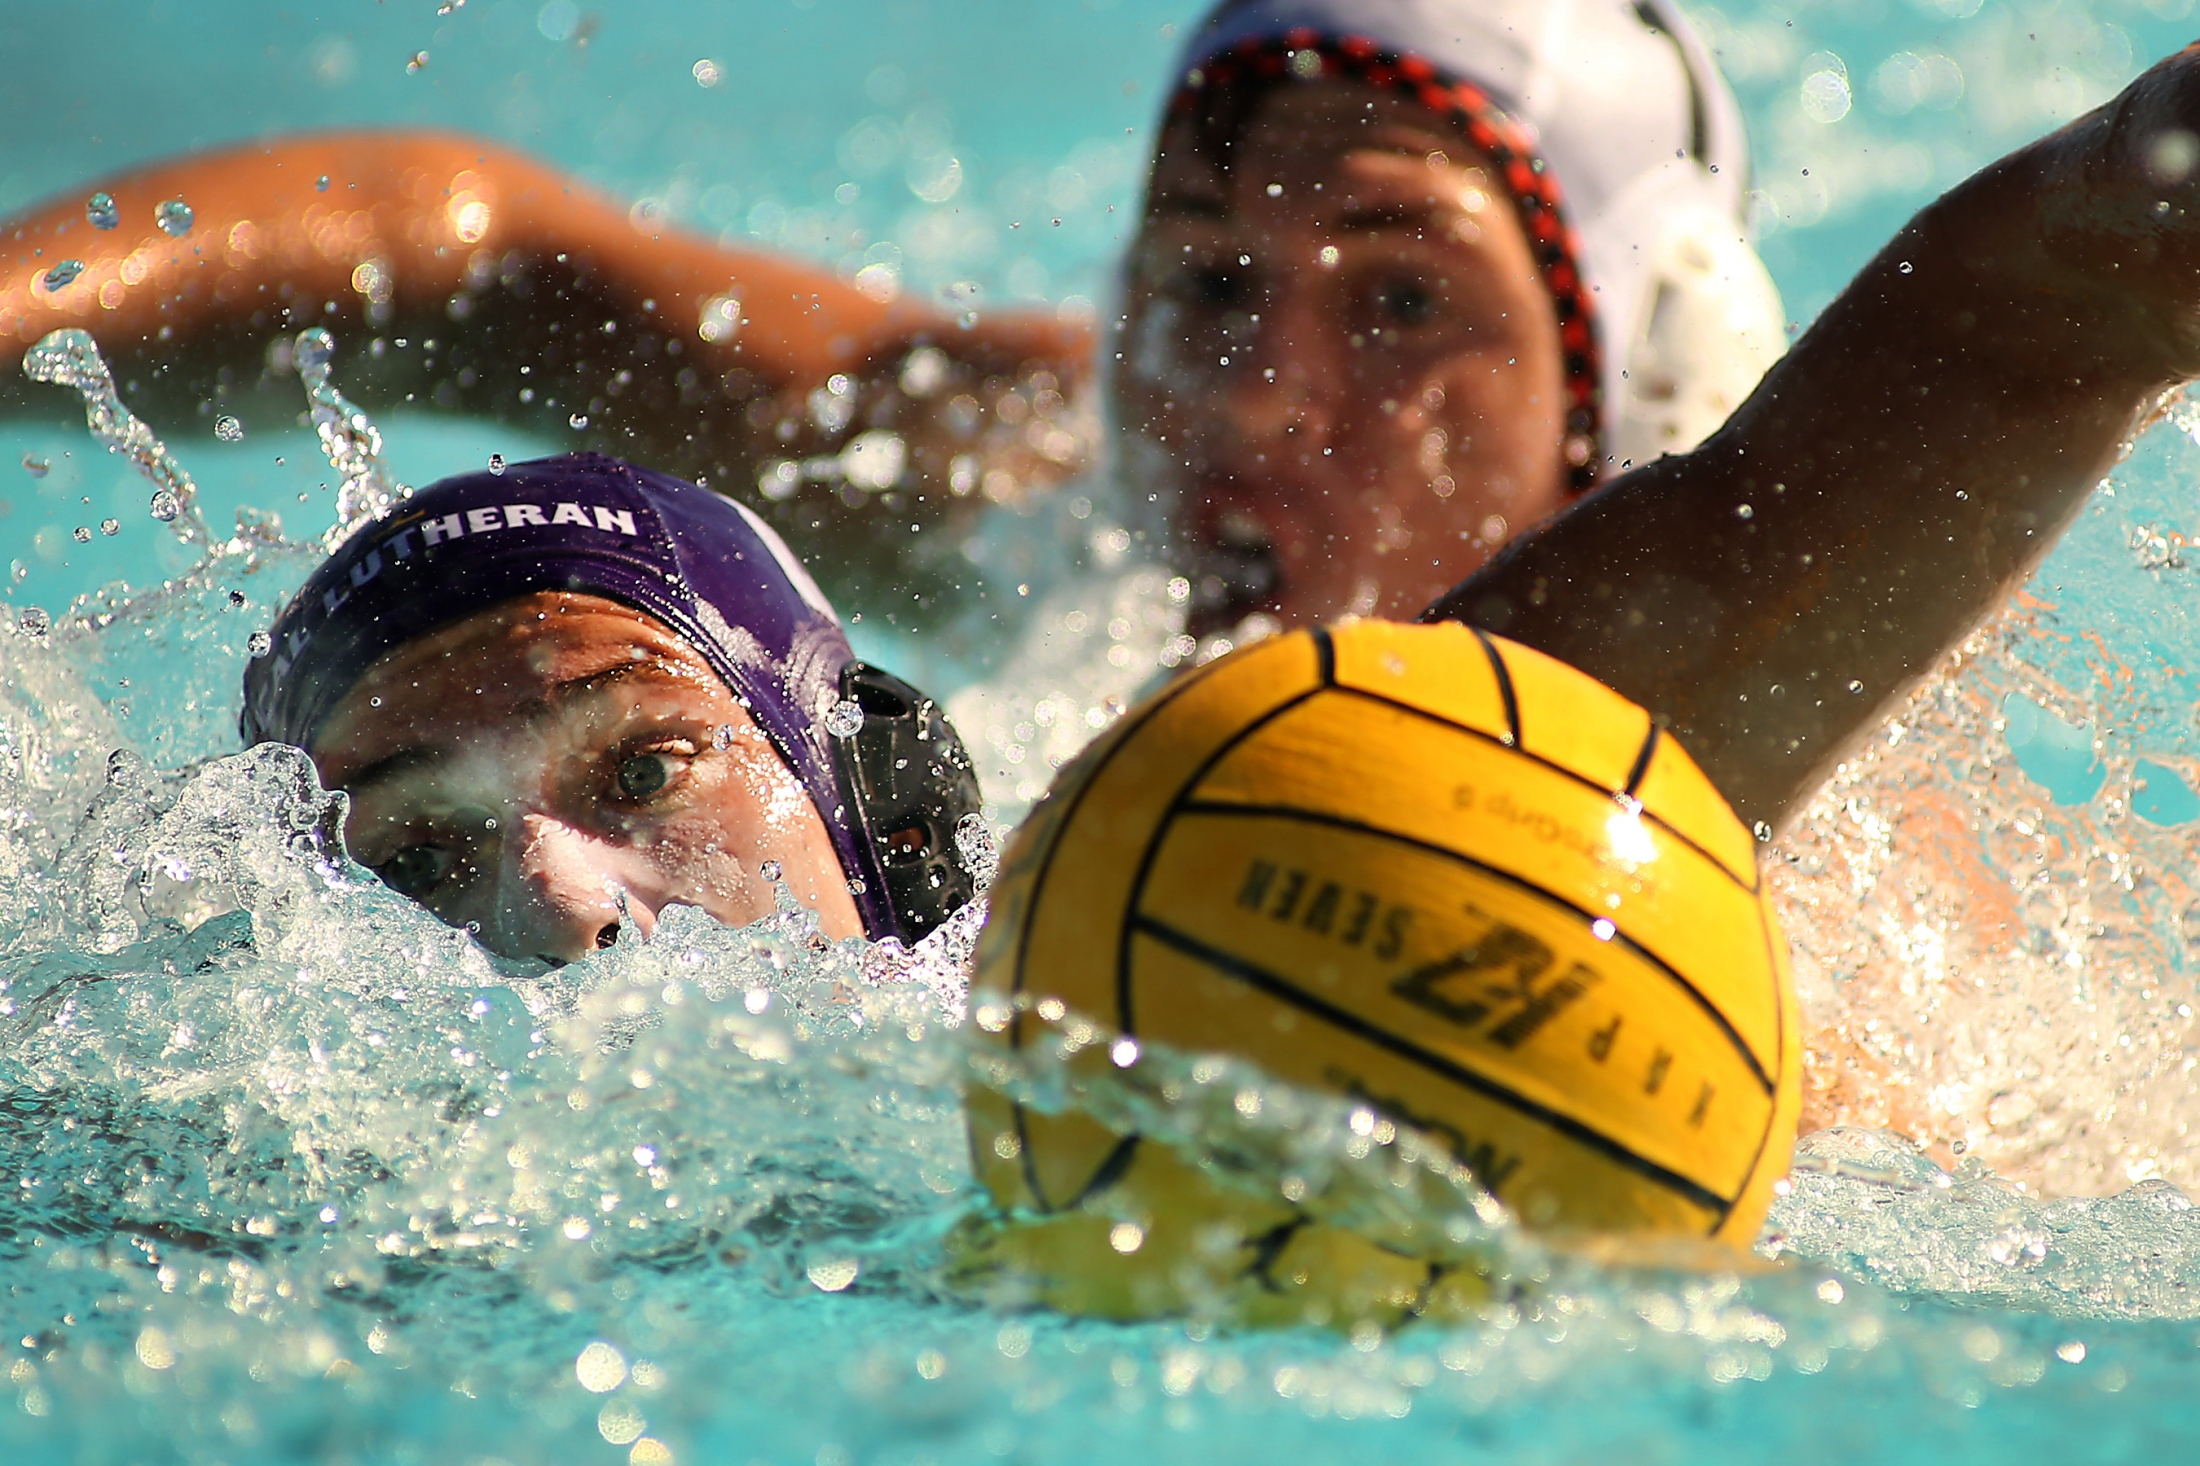 Cal Lutheran's Seth Hightower #8 fights to keep the ball away from Occidental College's Alex Marriott #11 during a water polo match at Cal Lutheran on Nov. 3, 2018.  ©2018 Katharine Lotze